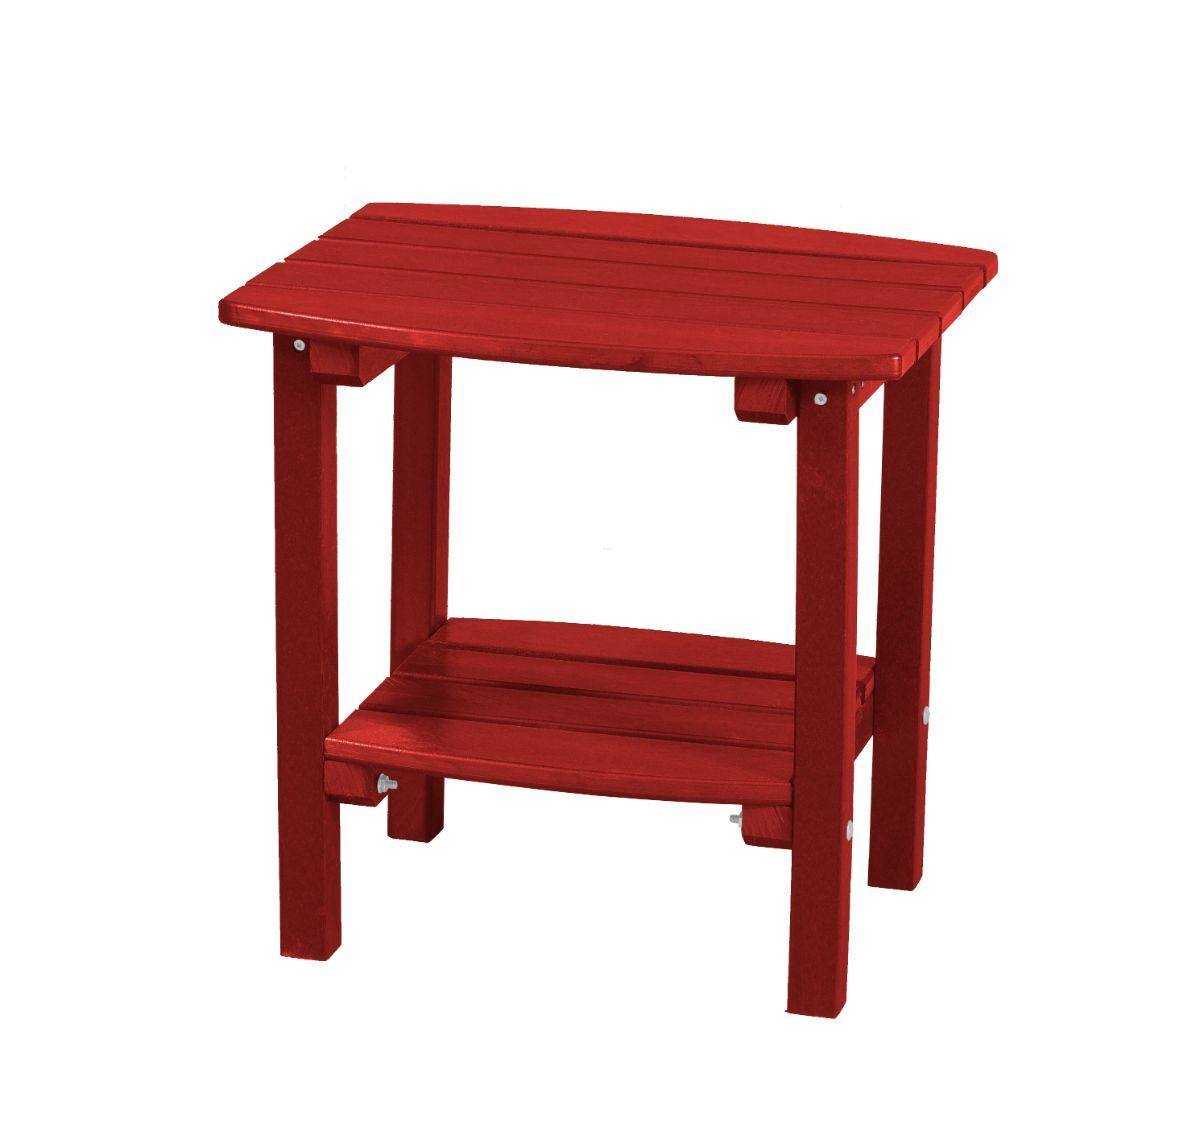 Cardinal Red Odessa Small Outdoor Side Table